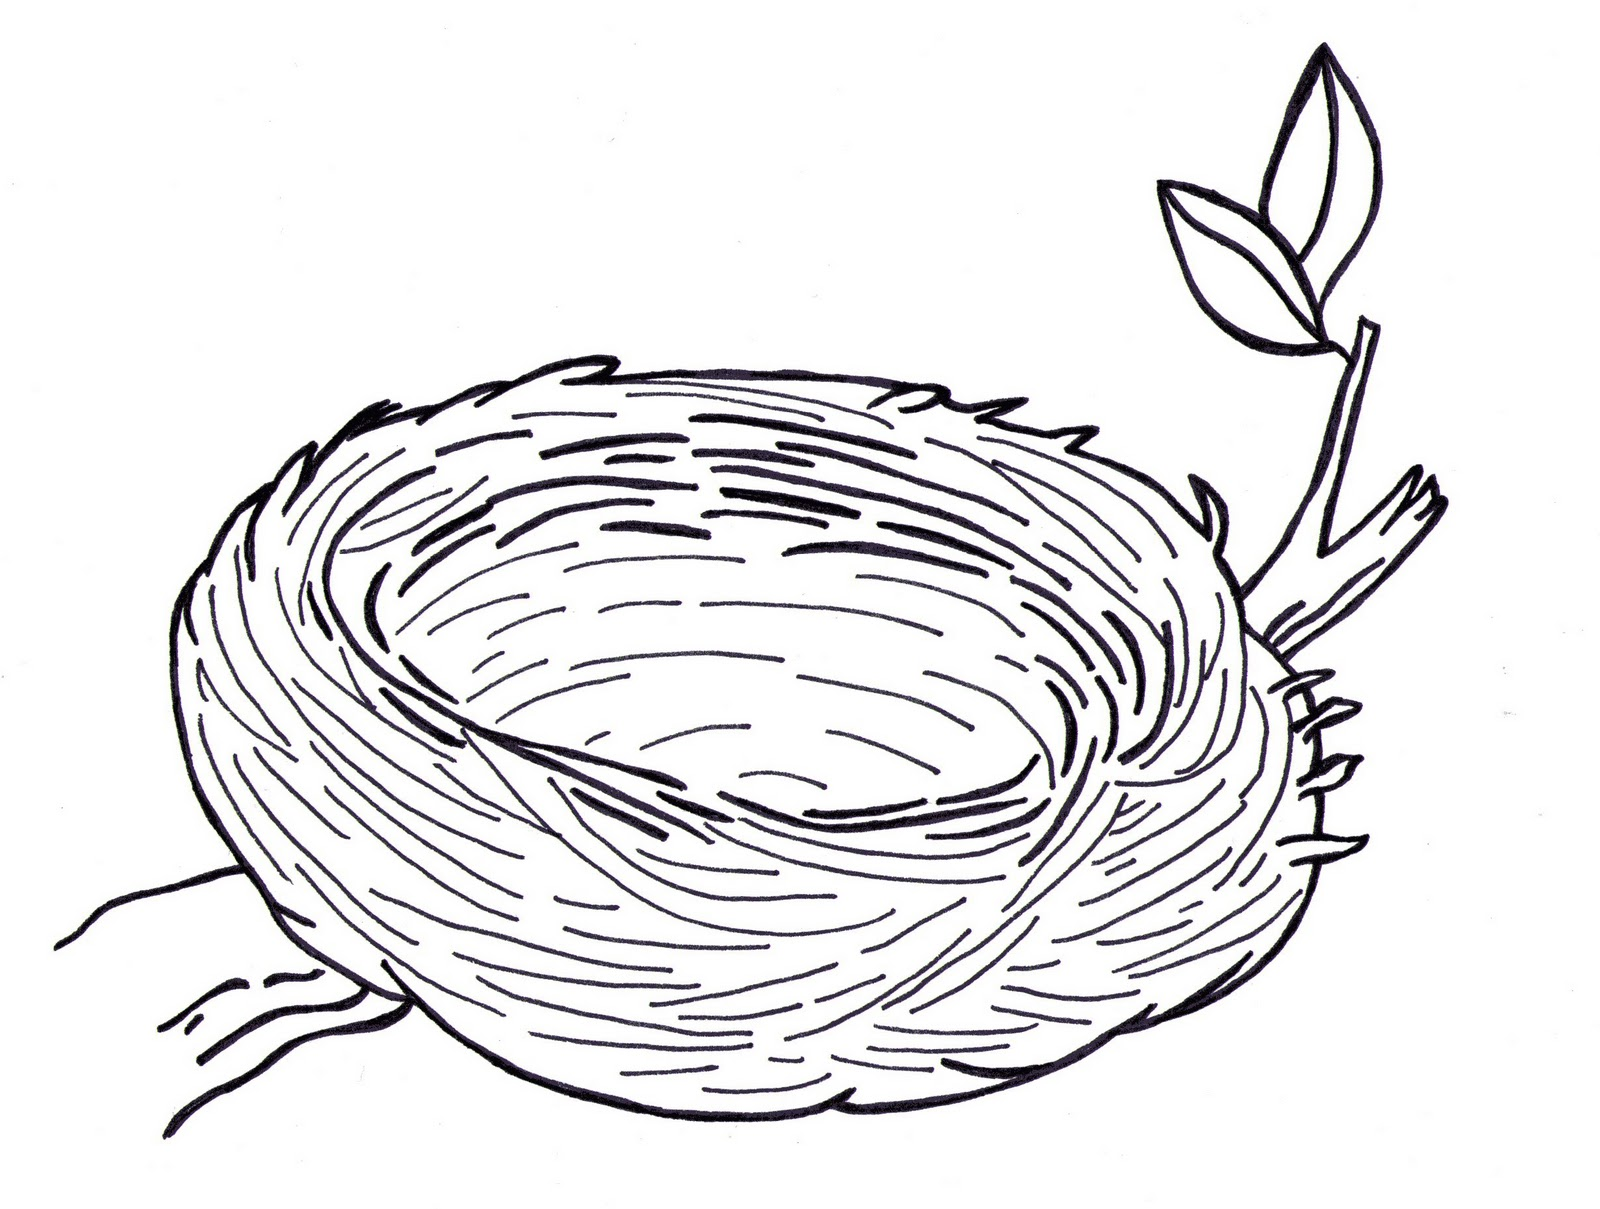 1600x1209 Nest Drawing Png Transparent Nest Drawing.png Images. Pluspng